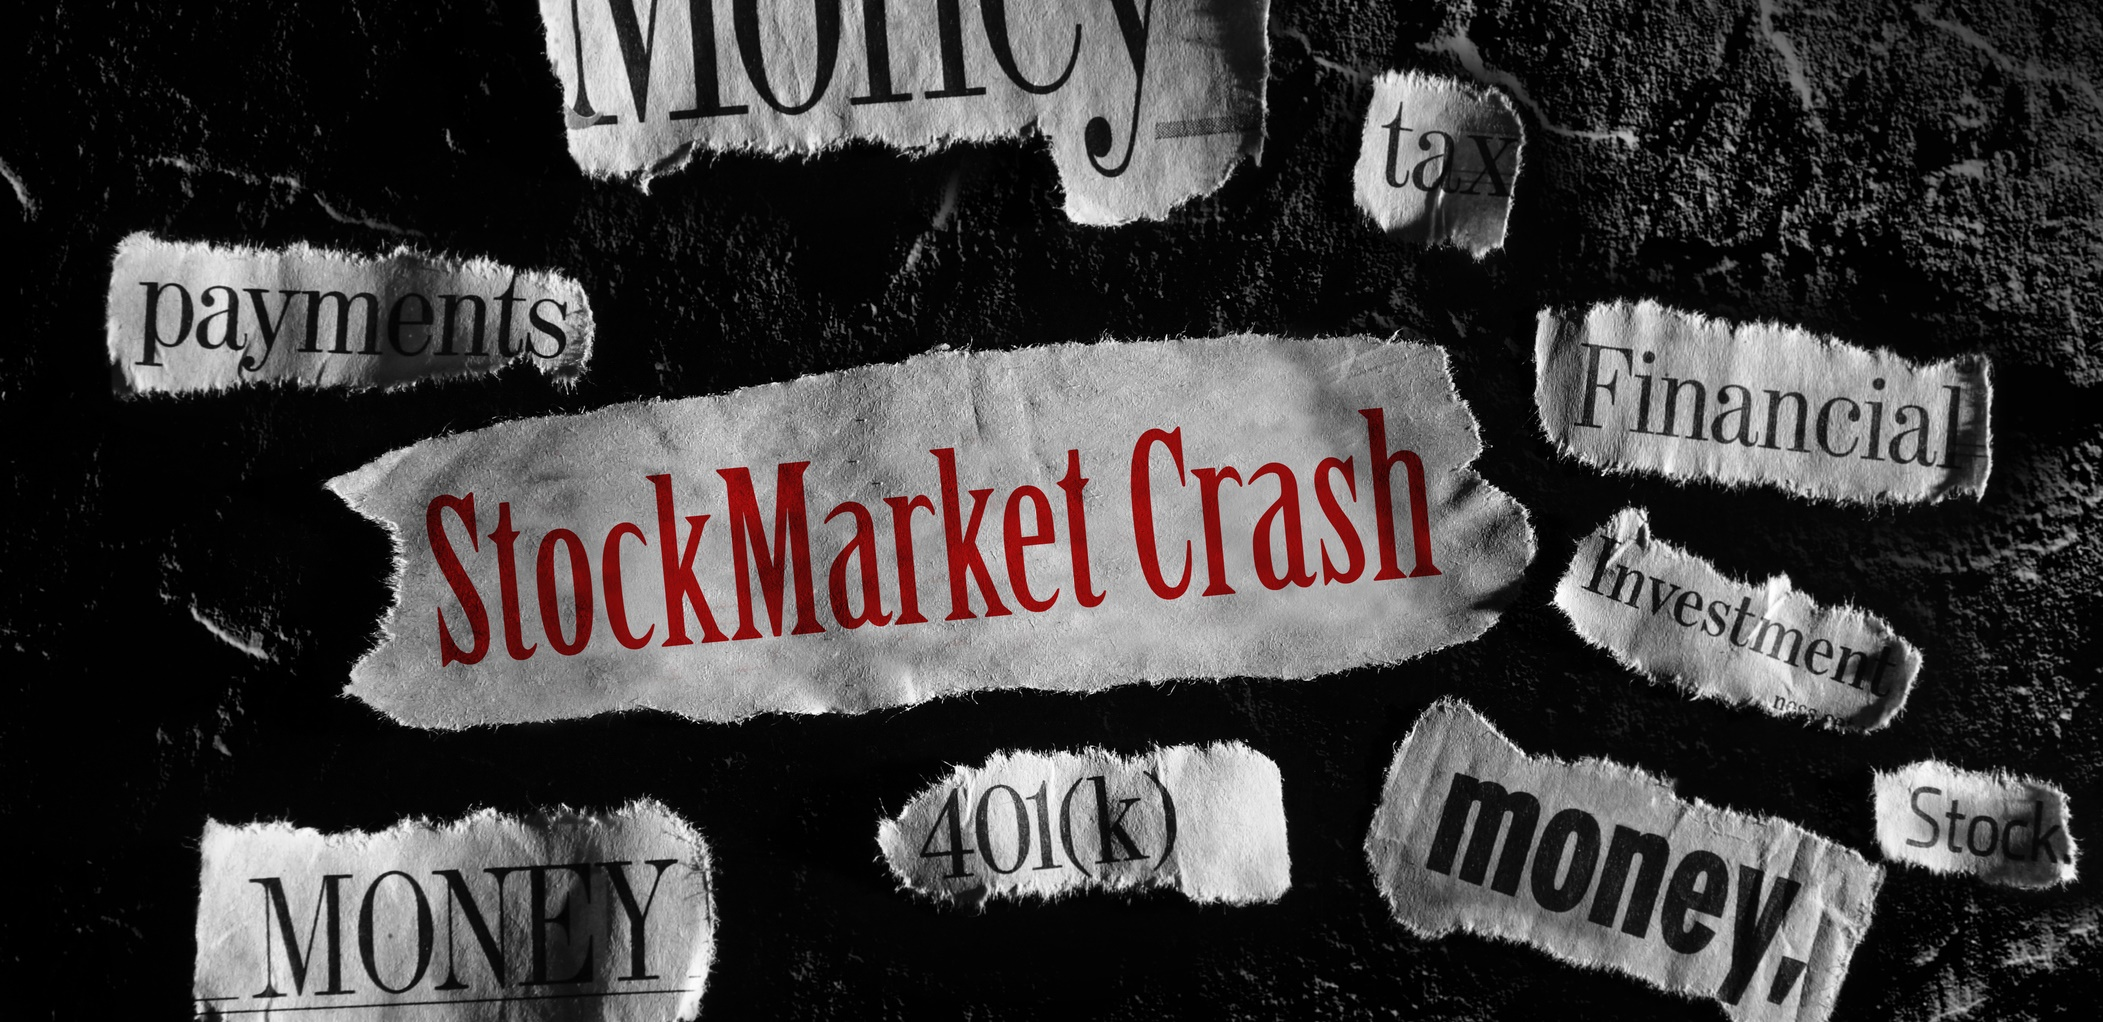 an introduction to the stock market crash A history of the global stock market: from ancient rome to silicon valley [b mark smith] on amazoncom free shipping on qualifying offers the stock market is central to the global economy.